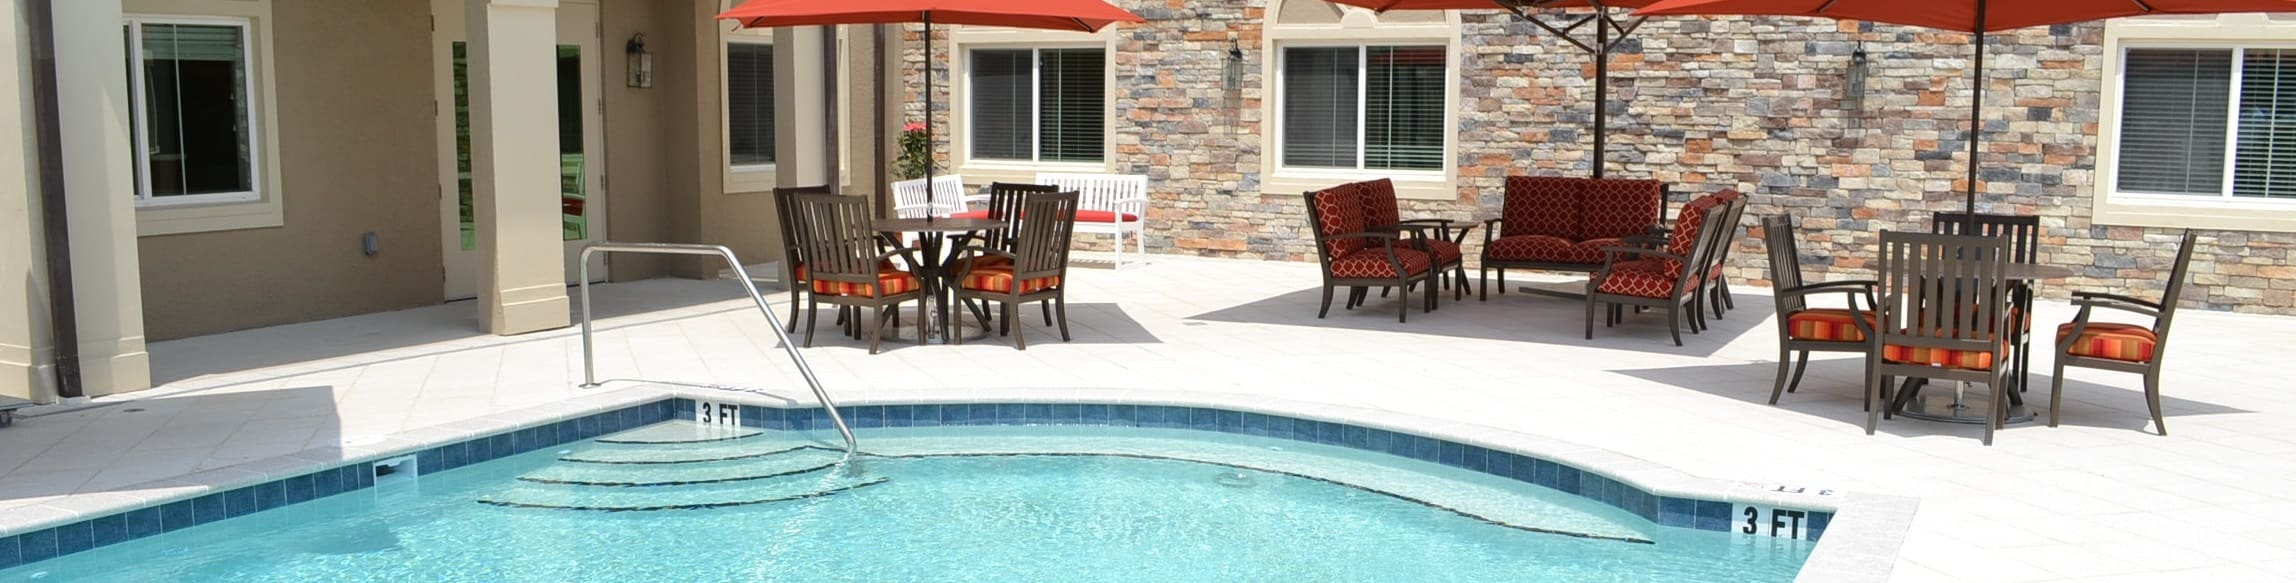 Senior Living Options In Tampa Fl Discovery Village At